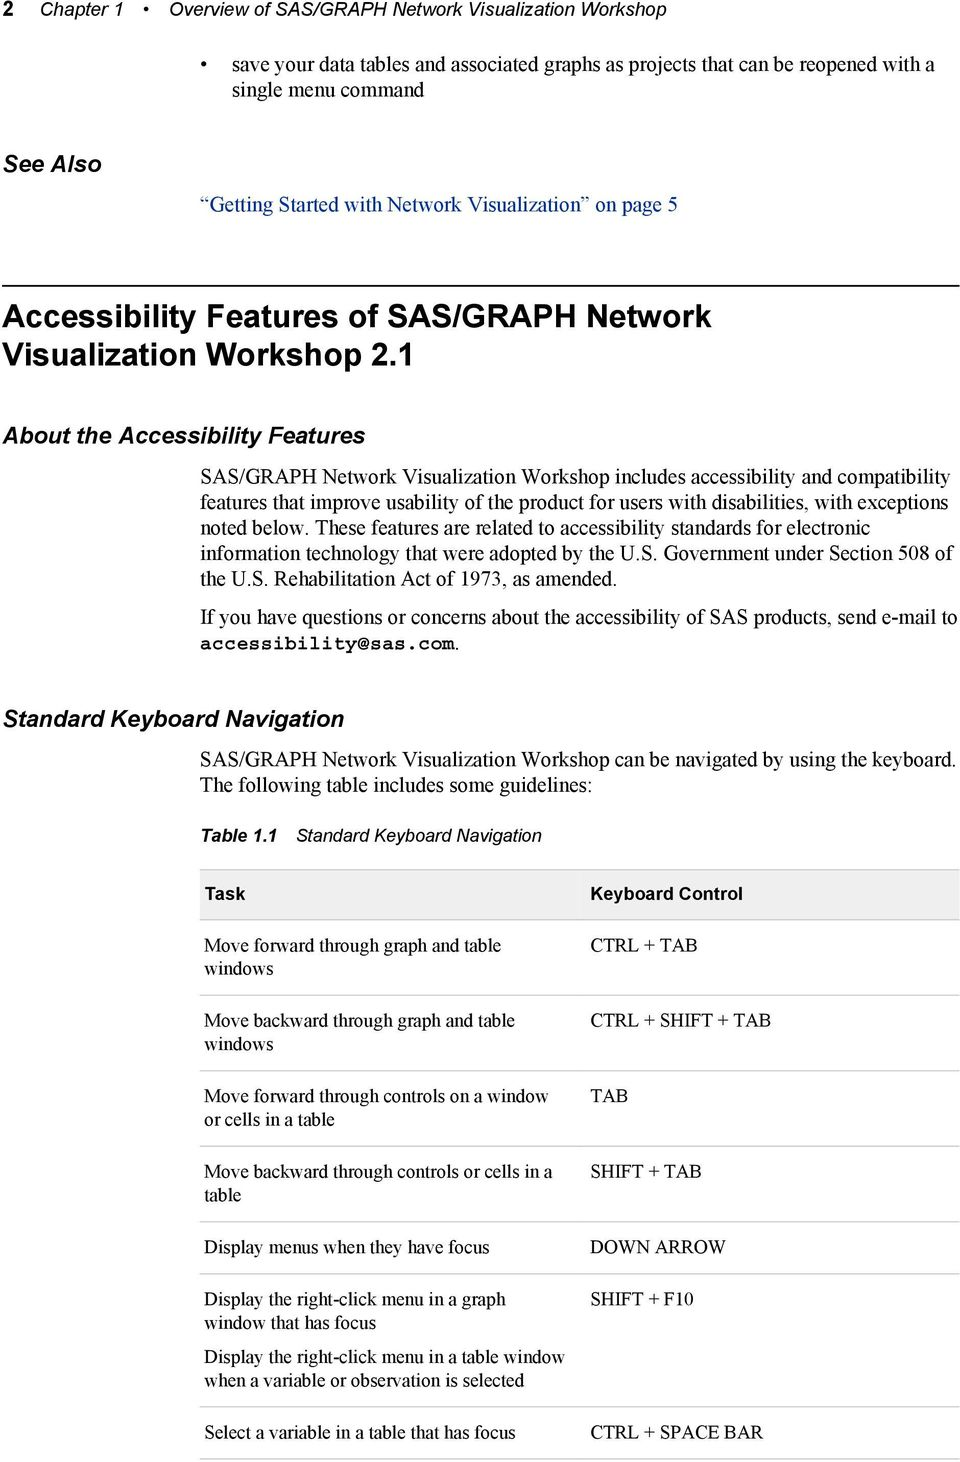 1 About the Accessibility Features SAS/GRAPH Network Visualization Workshop includes accessibility and compatibility features that improve usability of the product for users with disabilities, with